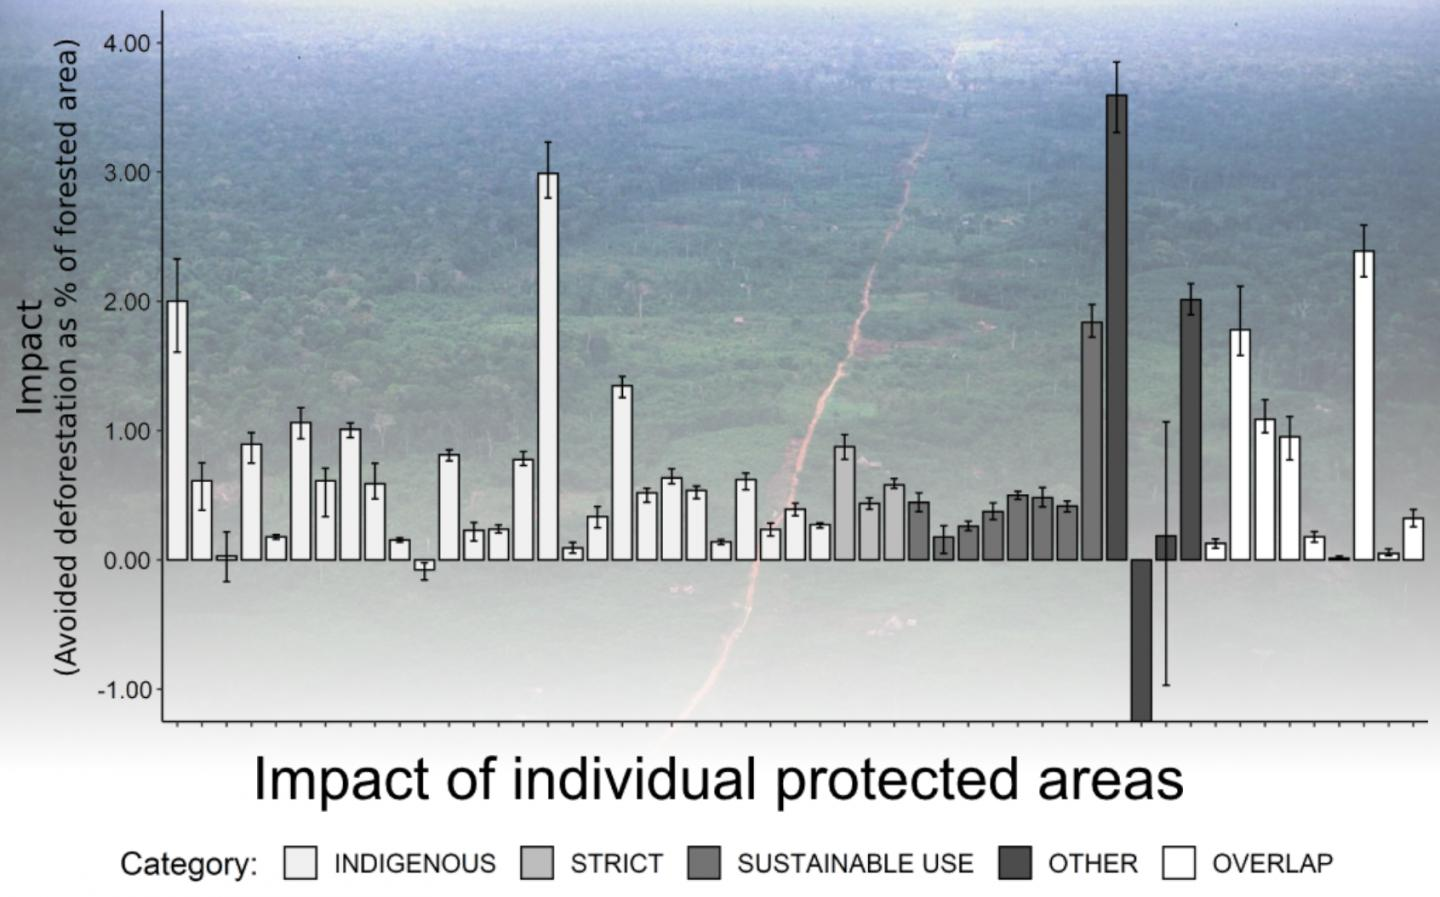 Figure depicting the impact of individual protected areas